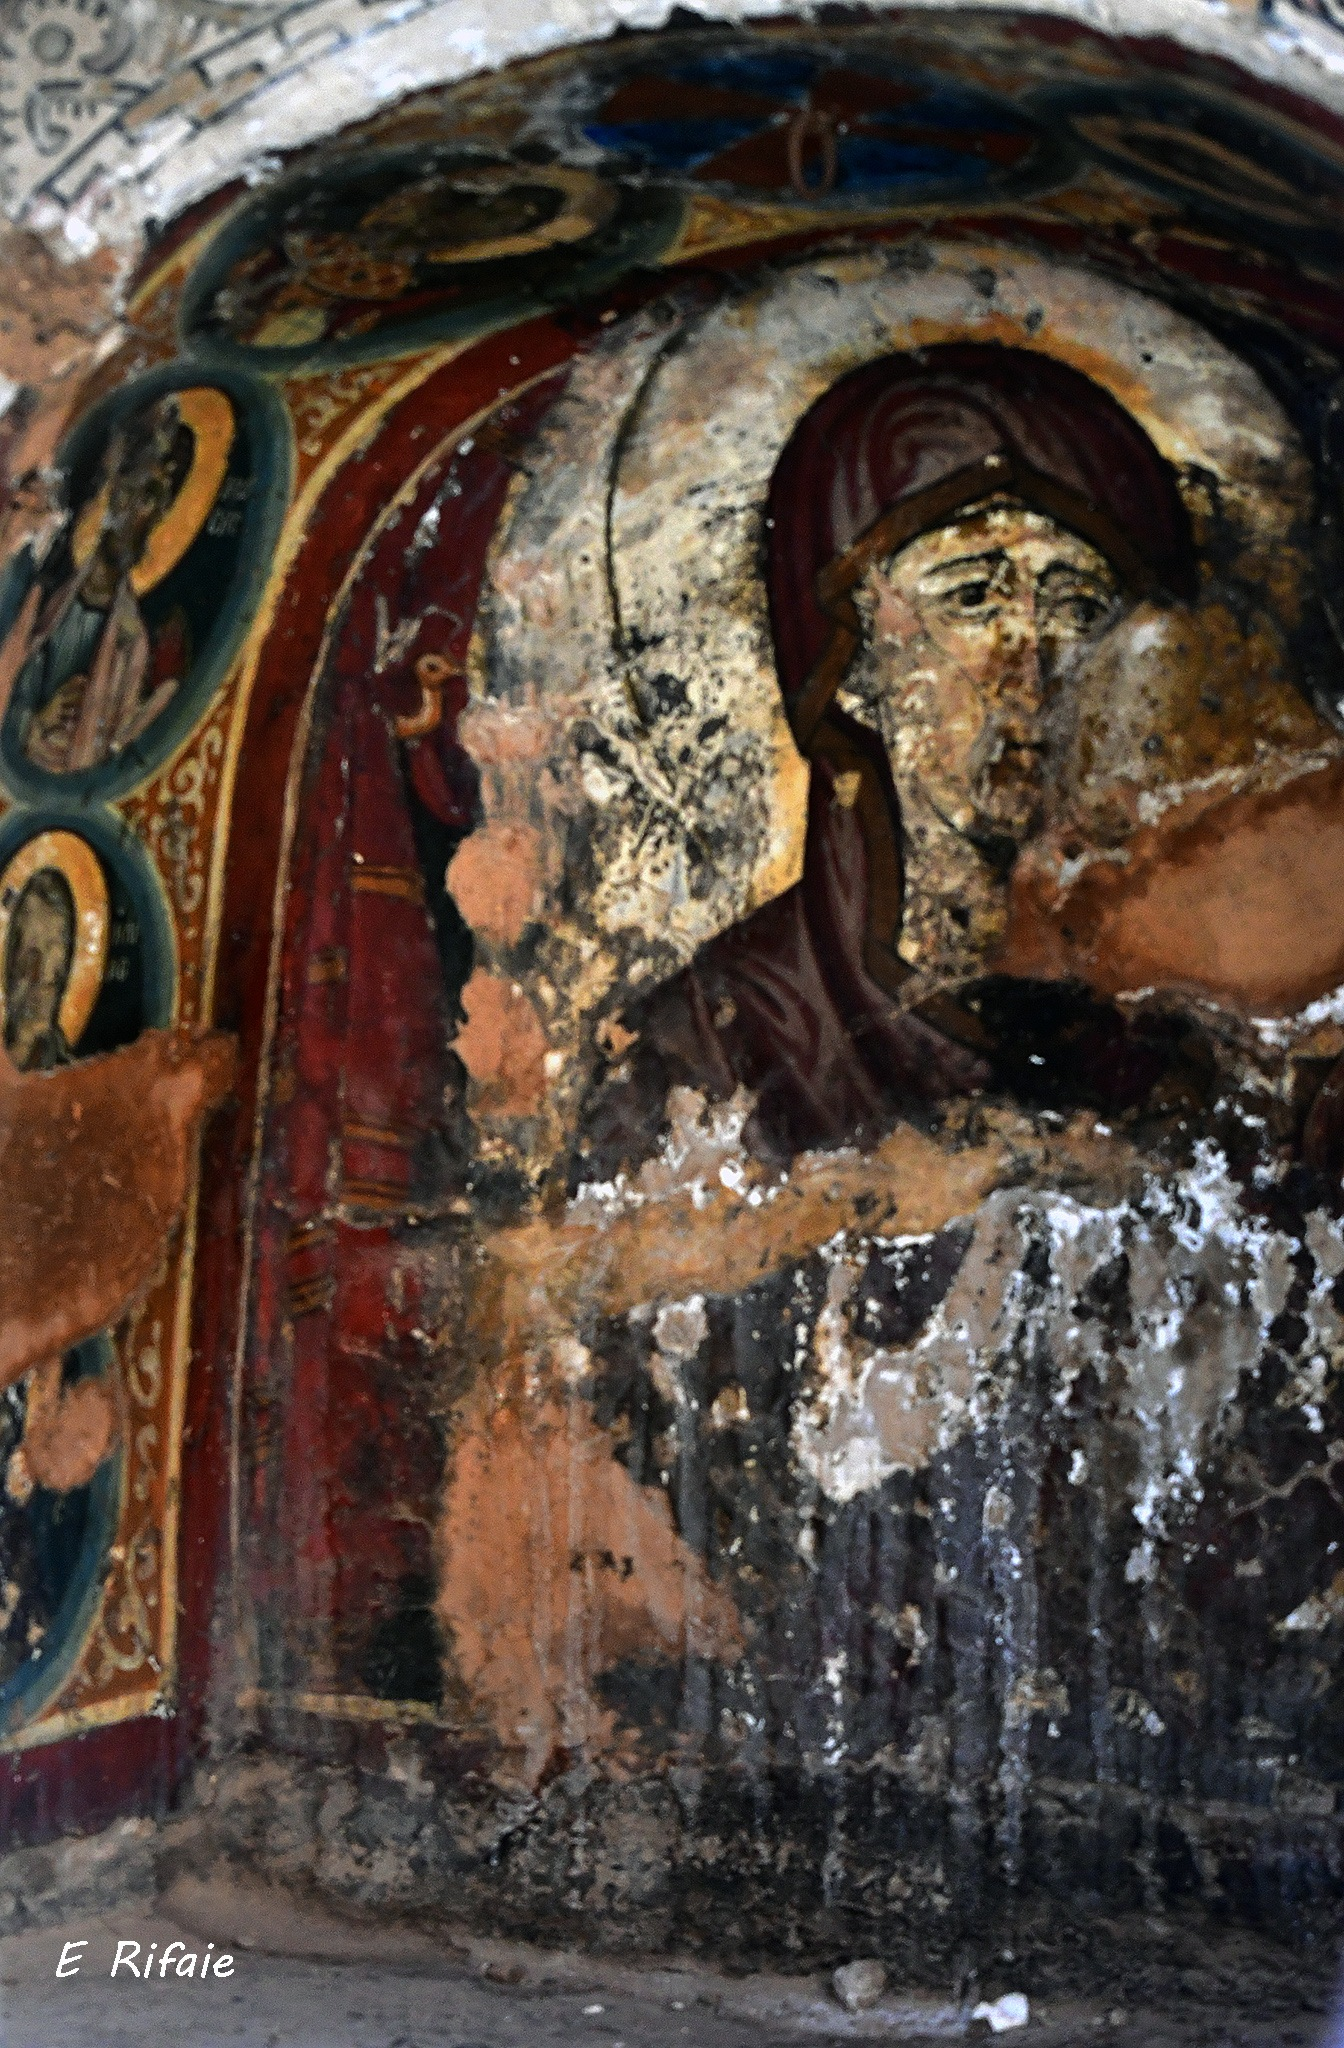 Icon of Saint Catherine's Monastery by Emad Eldin Moustafa El Refaie